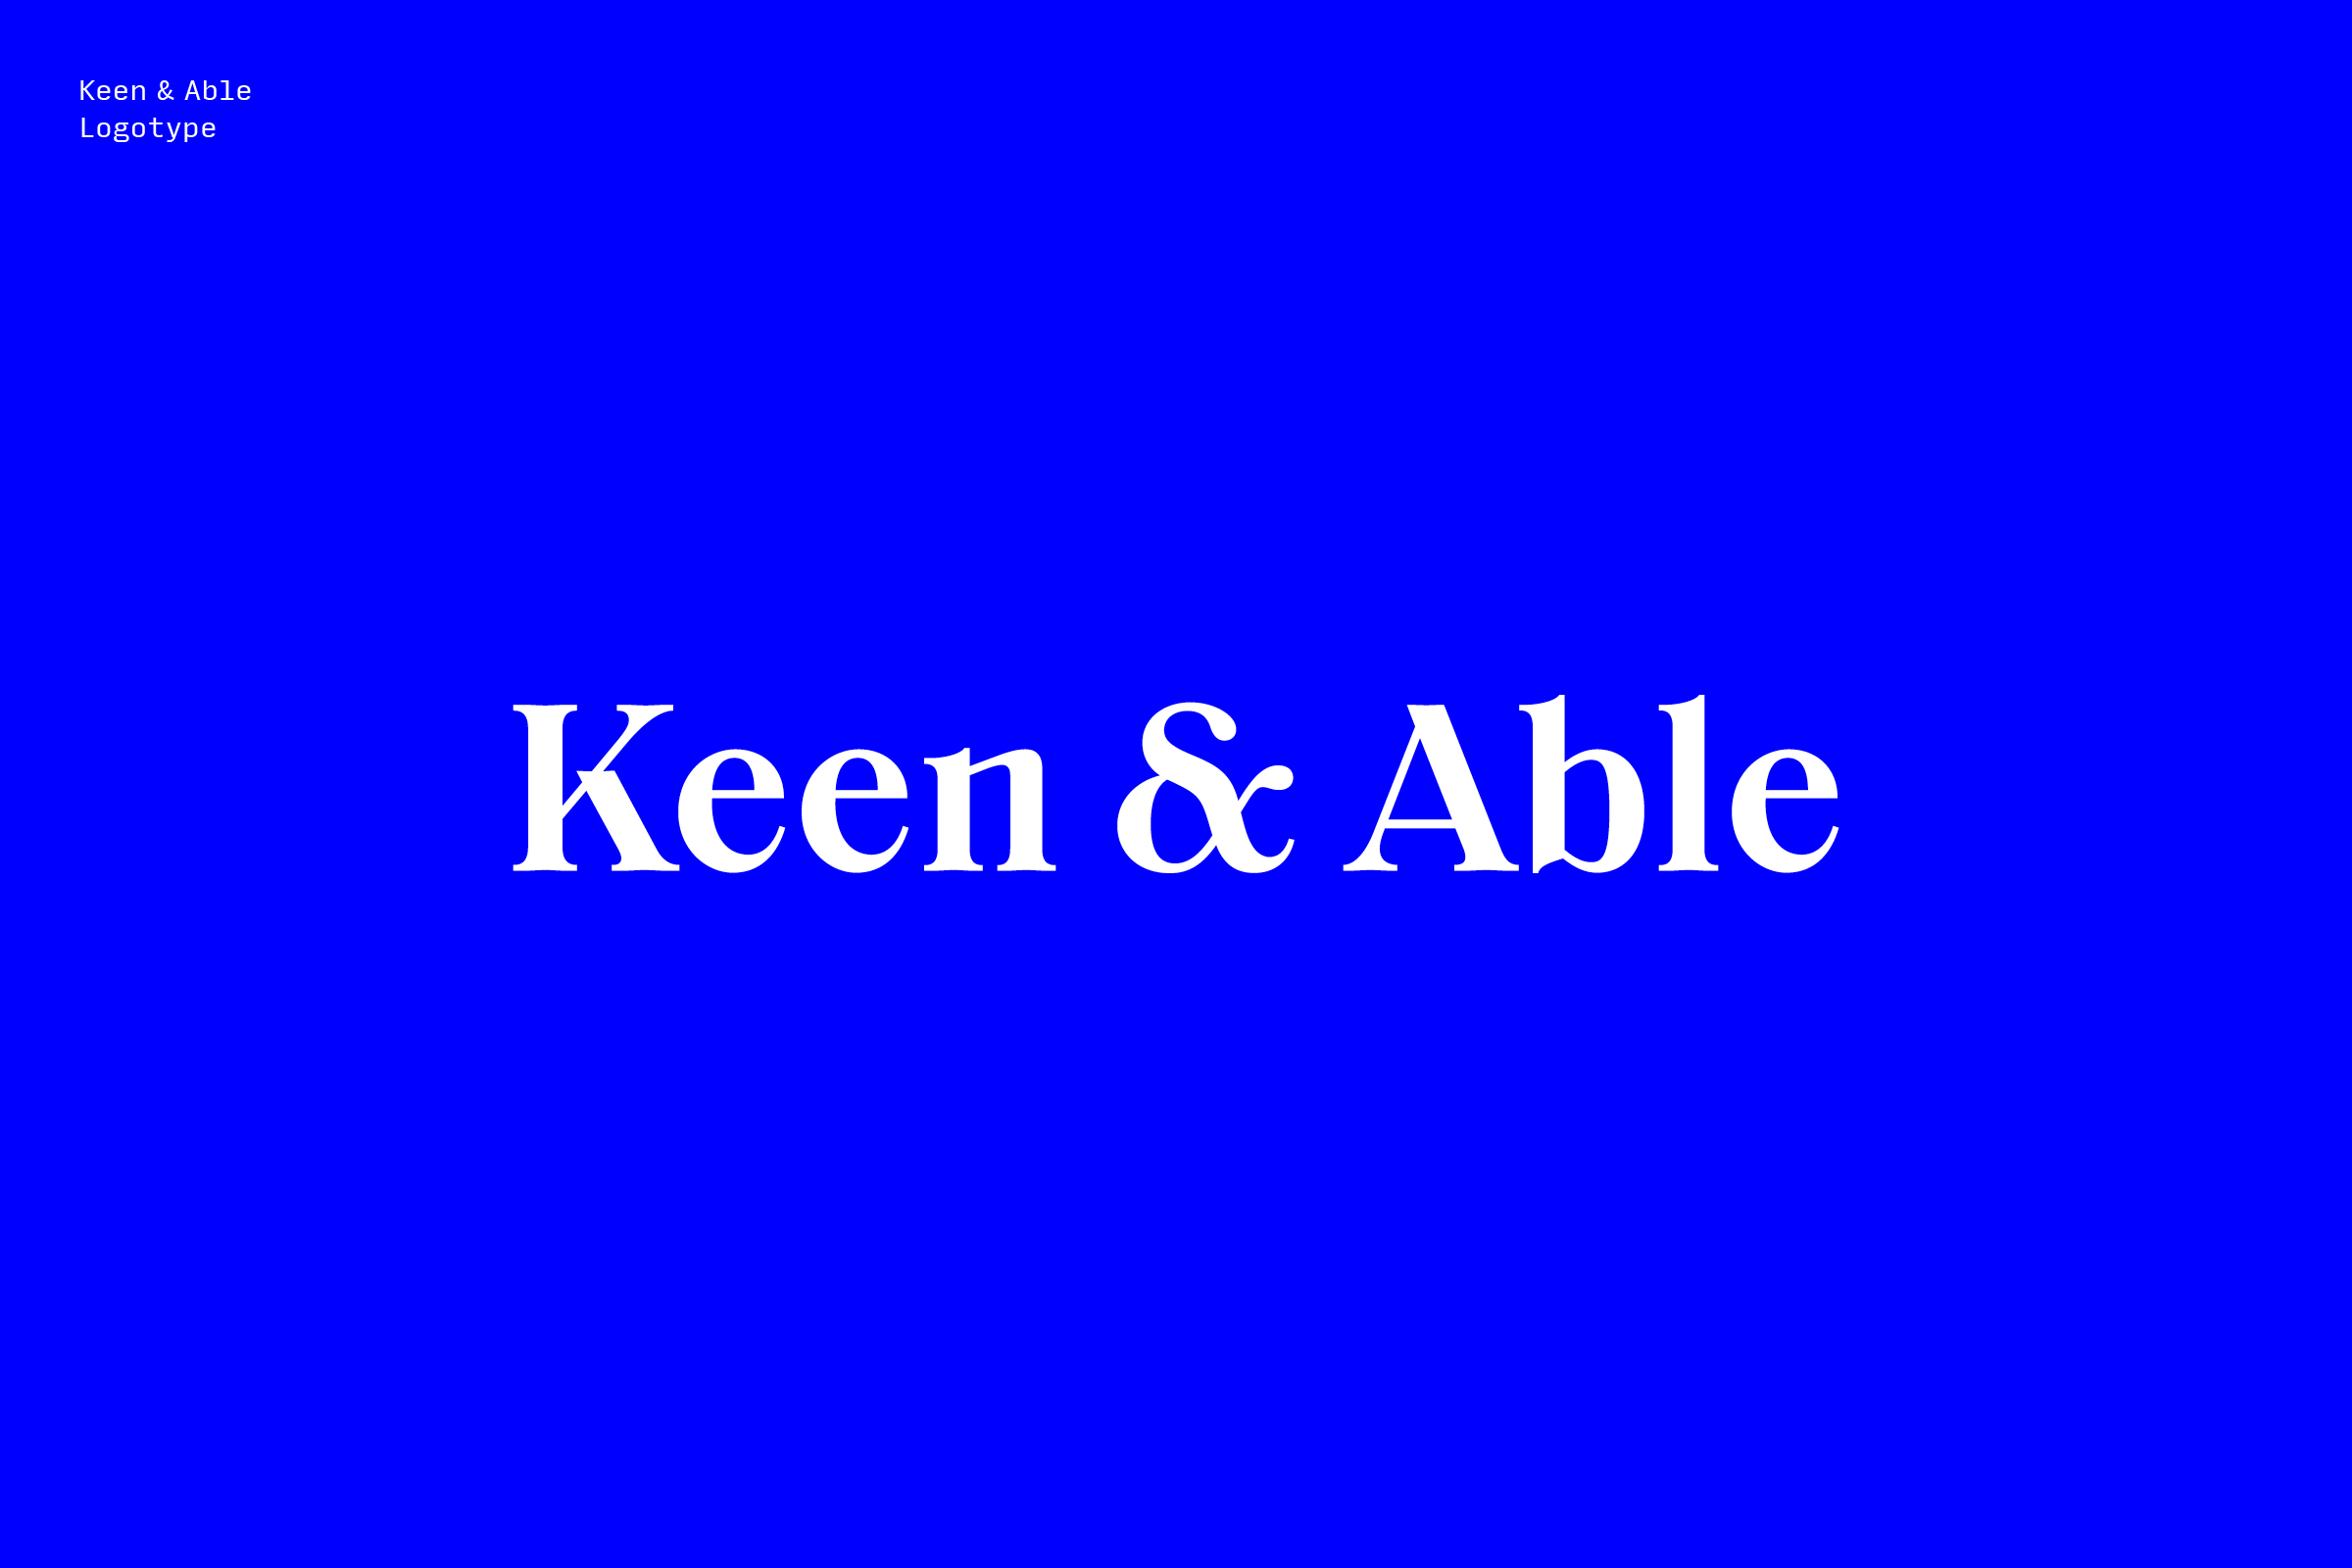 Anders Nord_Keen & Able_Case_Logo_12.jpg